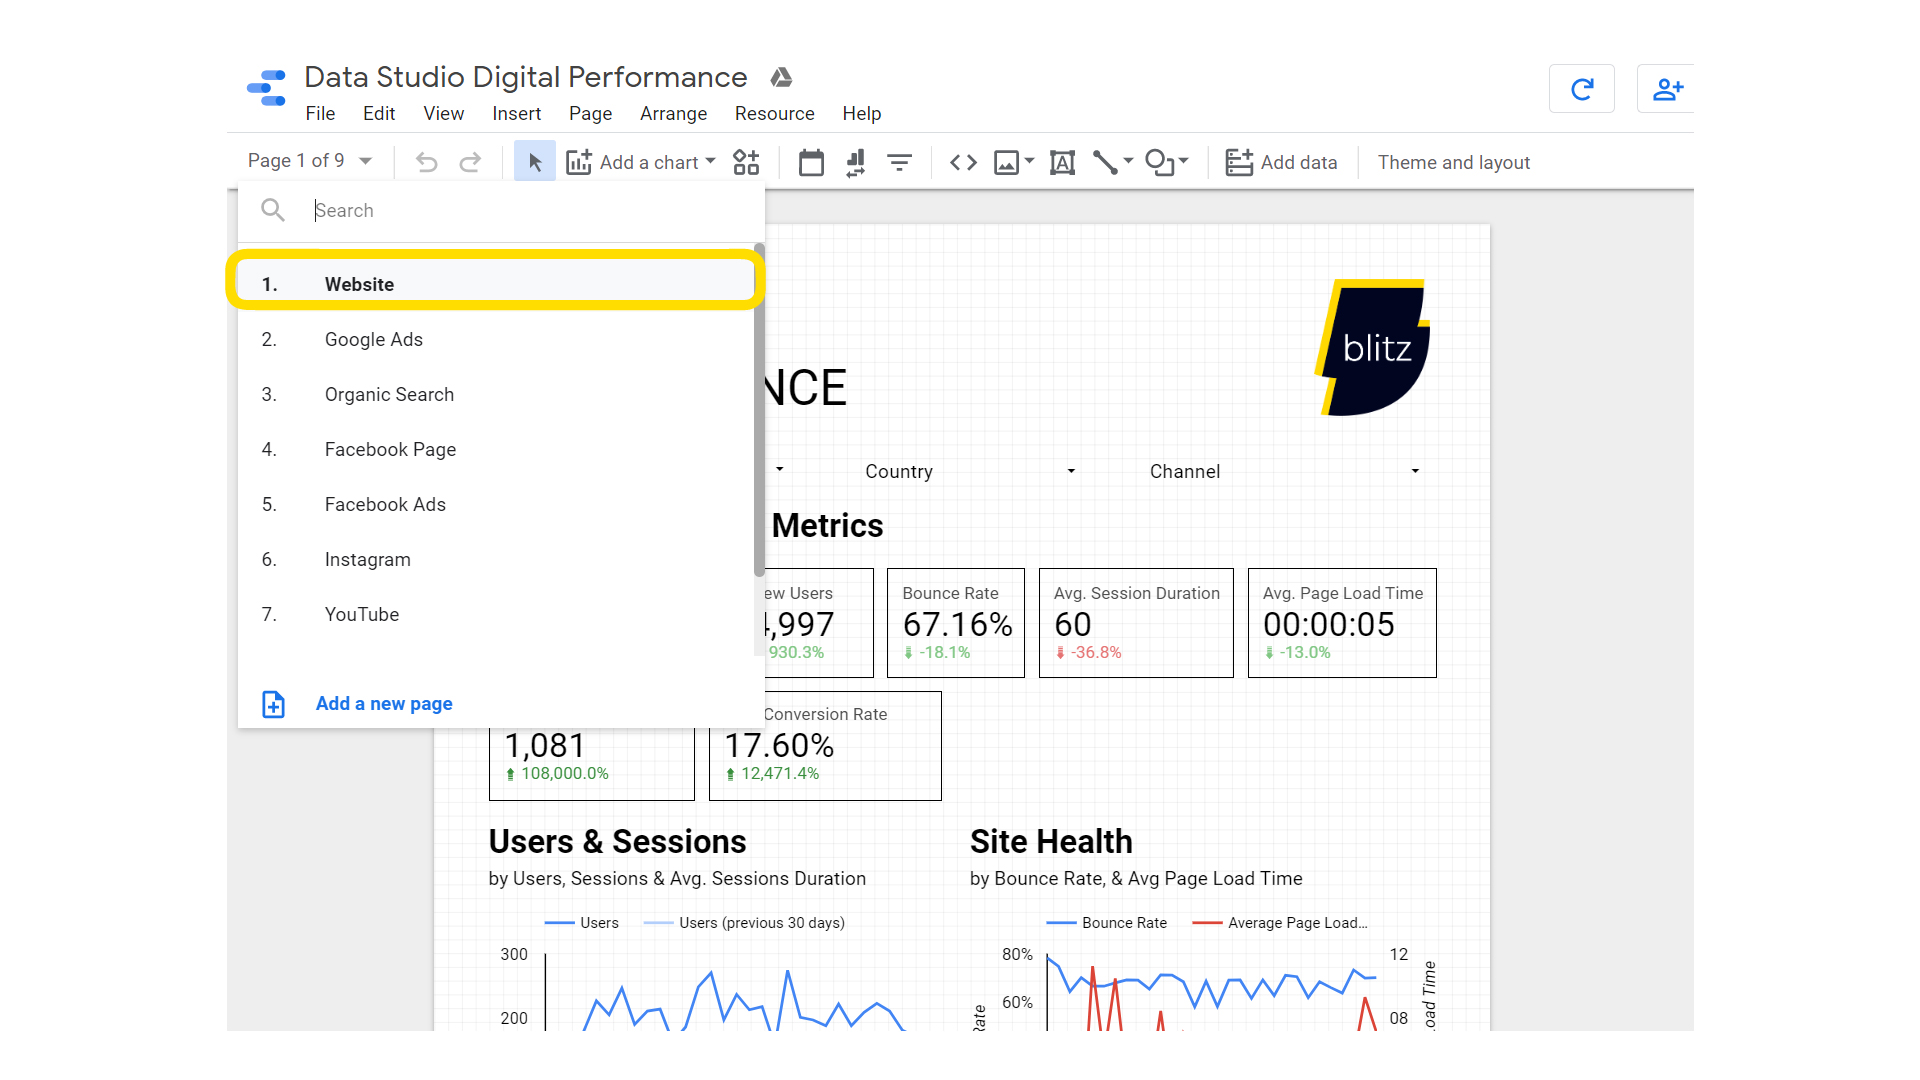 Overview of different pages in Google Data Studio